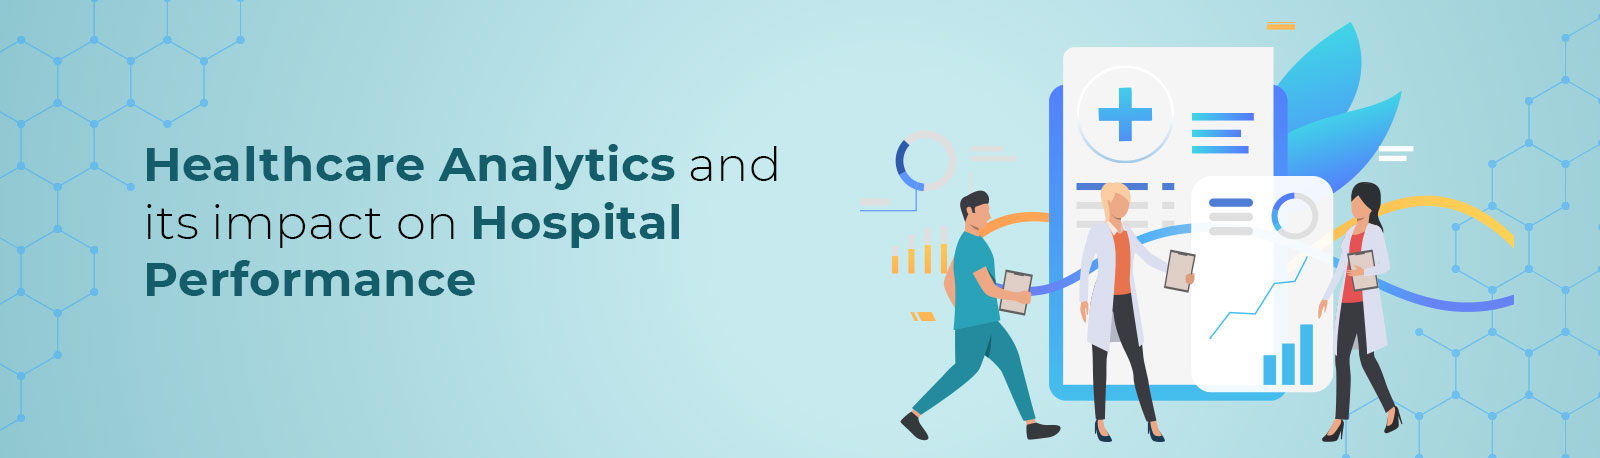 Healthcare Analytics and its impact on Hospital Performance